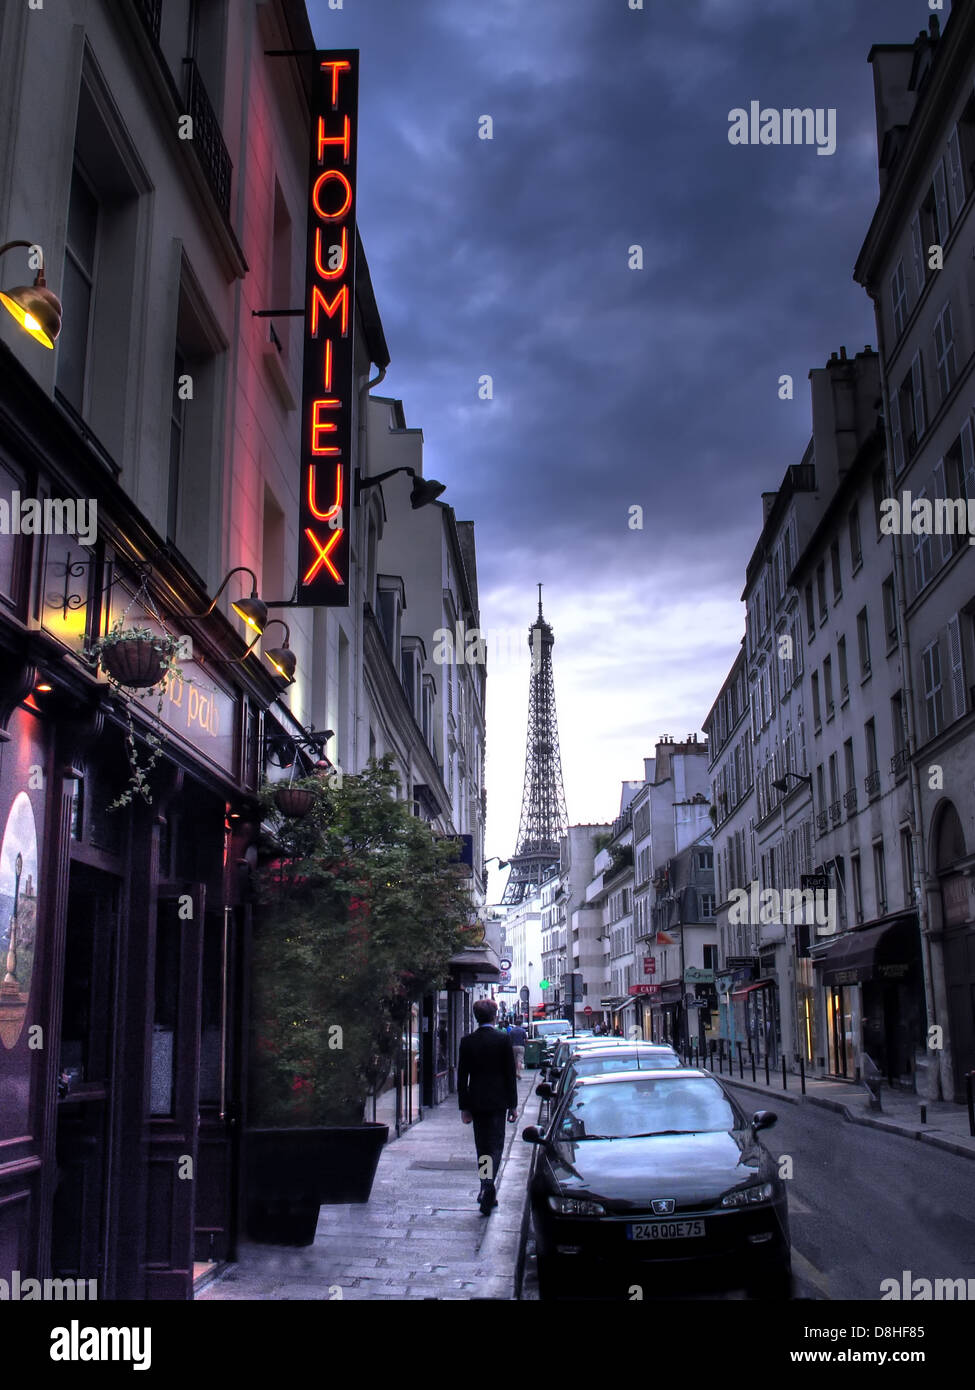 A,single,frenchman,walks,from,79,Rue,Saint-Dominique,75007,Paris,France,The,Thoumieux,restaurant,food,street,tour,Eiffel,tower,dusk,tourist,travel,shot,image,brochure,iconic,early,morning,red,sign,romance,romantic,city,capital,pleasure,eat,eating,fine,dining,dine,dinner,lunch,Gotonysmith Invalides Palais-Bourbon Nice Brasserie atmosphere,gotonysmith,tourist,tour,tourism,travel,icon,everyday,streets,Buy Pictures of,Buy Images Of,Iconic Paris